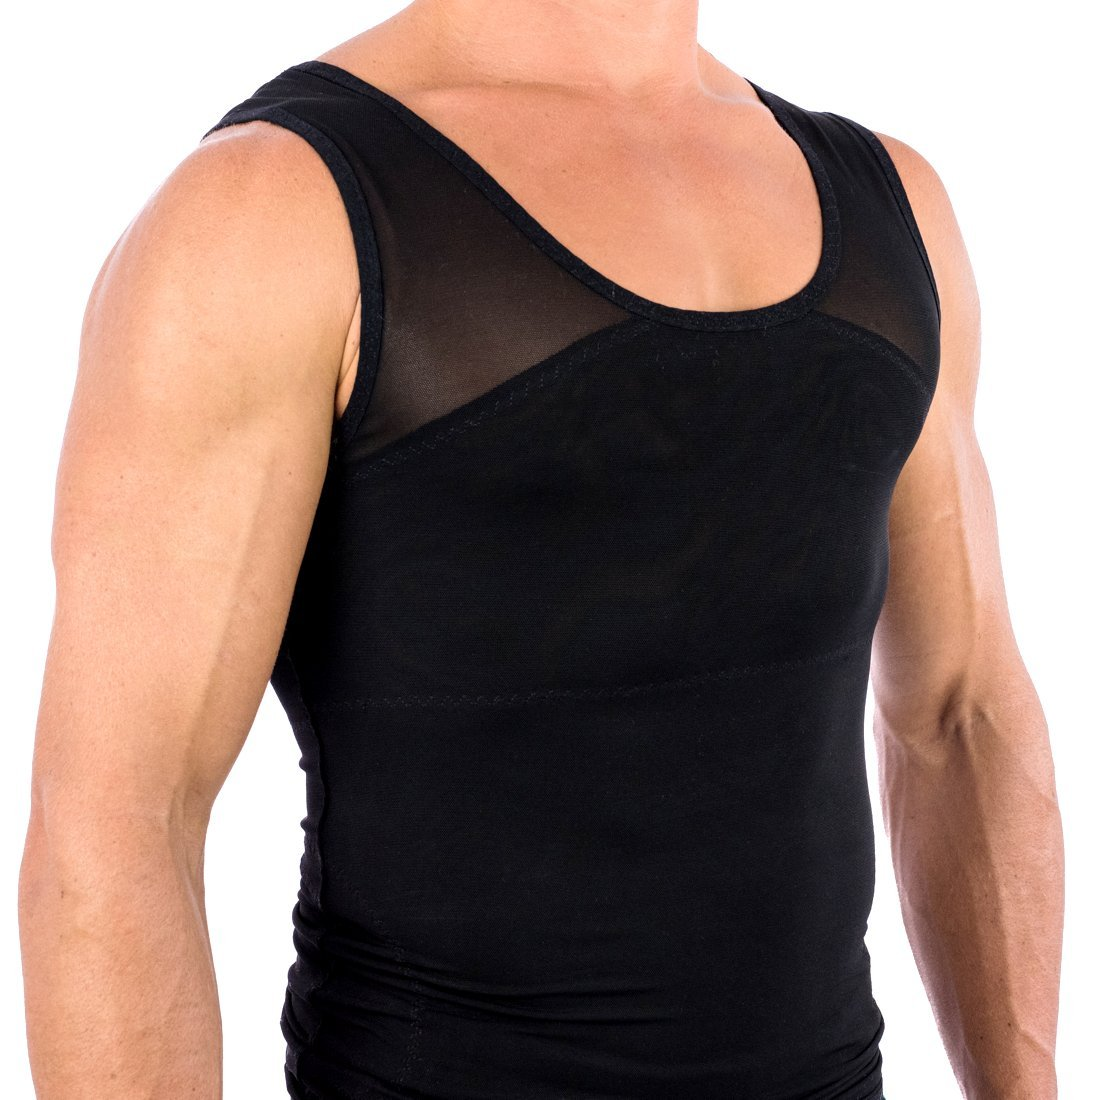 8c4637800715e Does not lose its compression elasticity. Our men s tank top girdle binder  is designed to provide a slim looking chest underneath any type of clothing